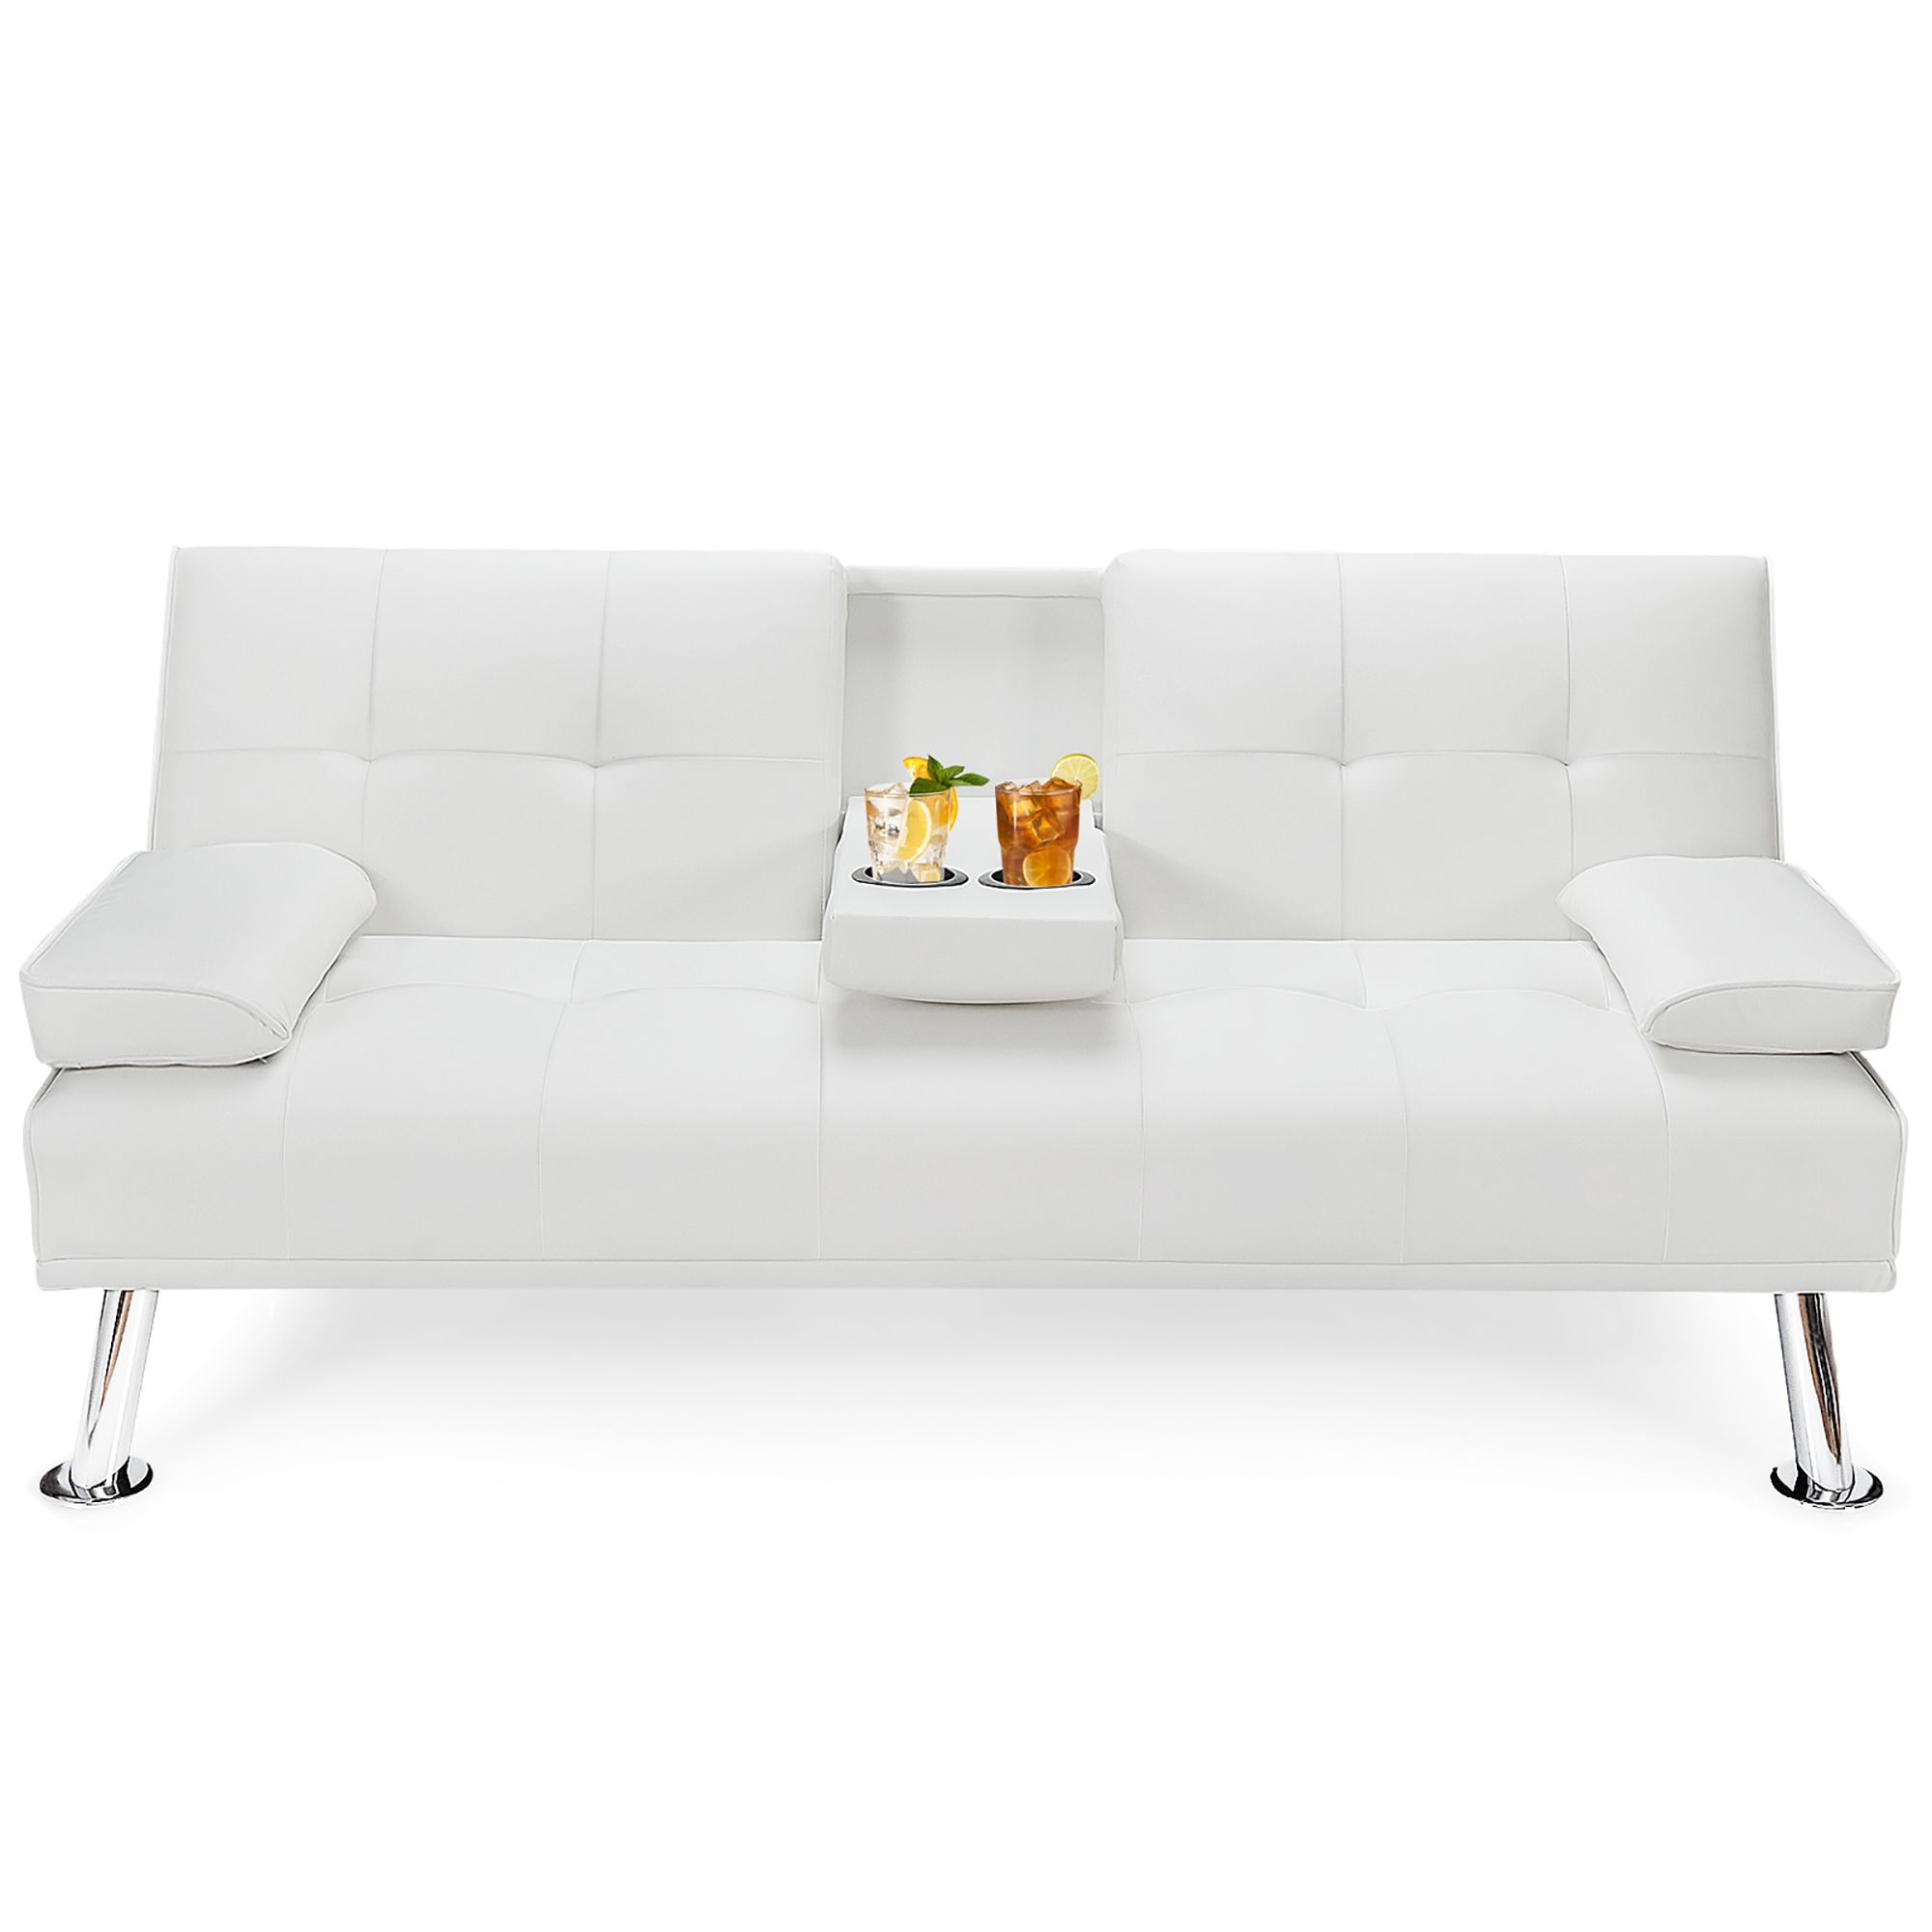 Costway Convertible Folding Futon Sofa Bed Leather w/Cup Holders&Armrests White